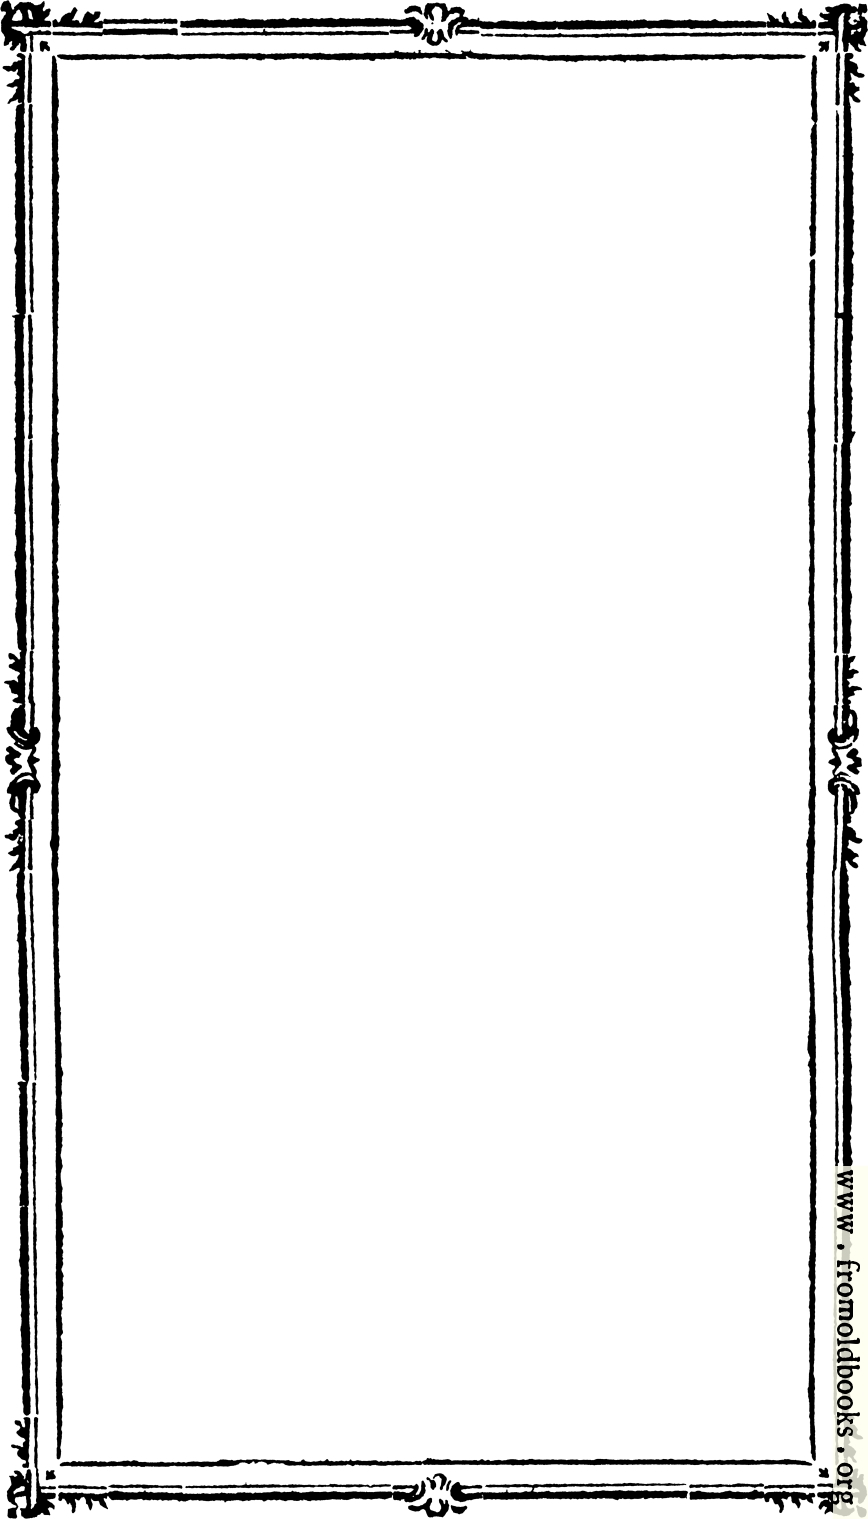 clip art page borders free download - photo #5